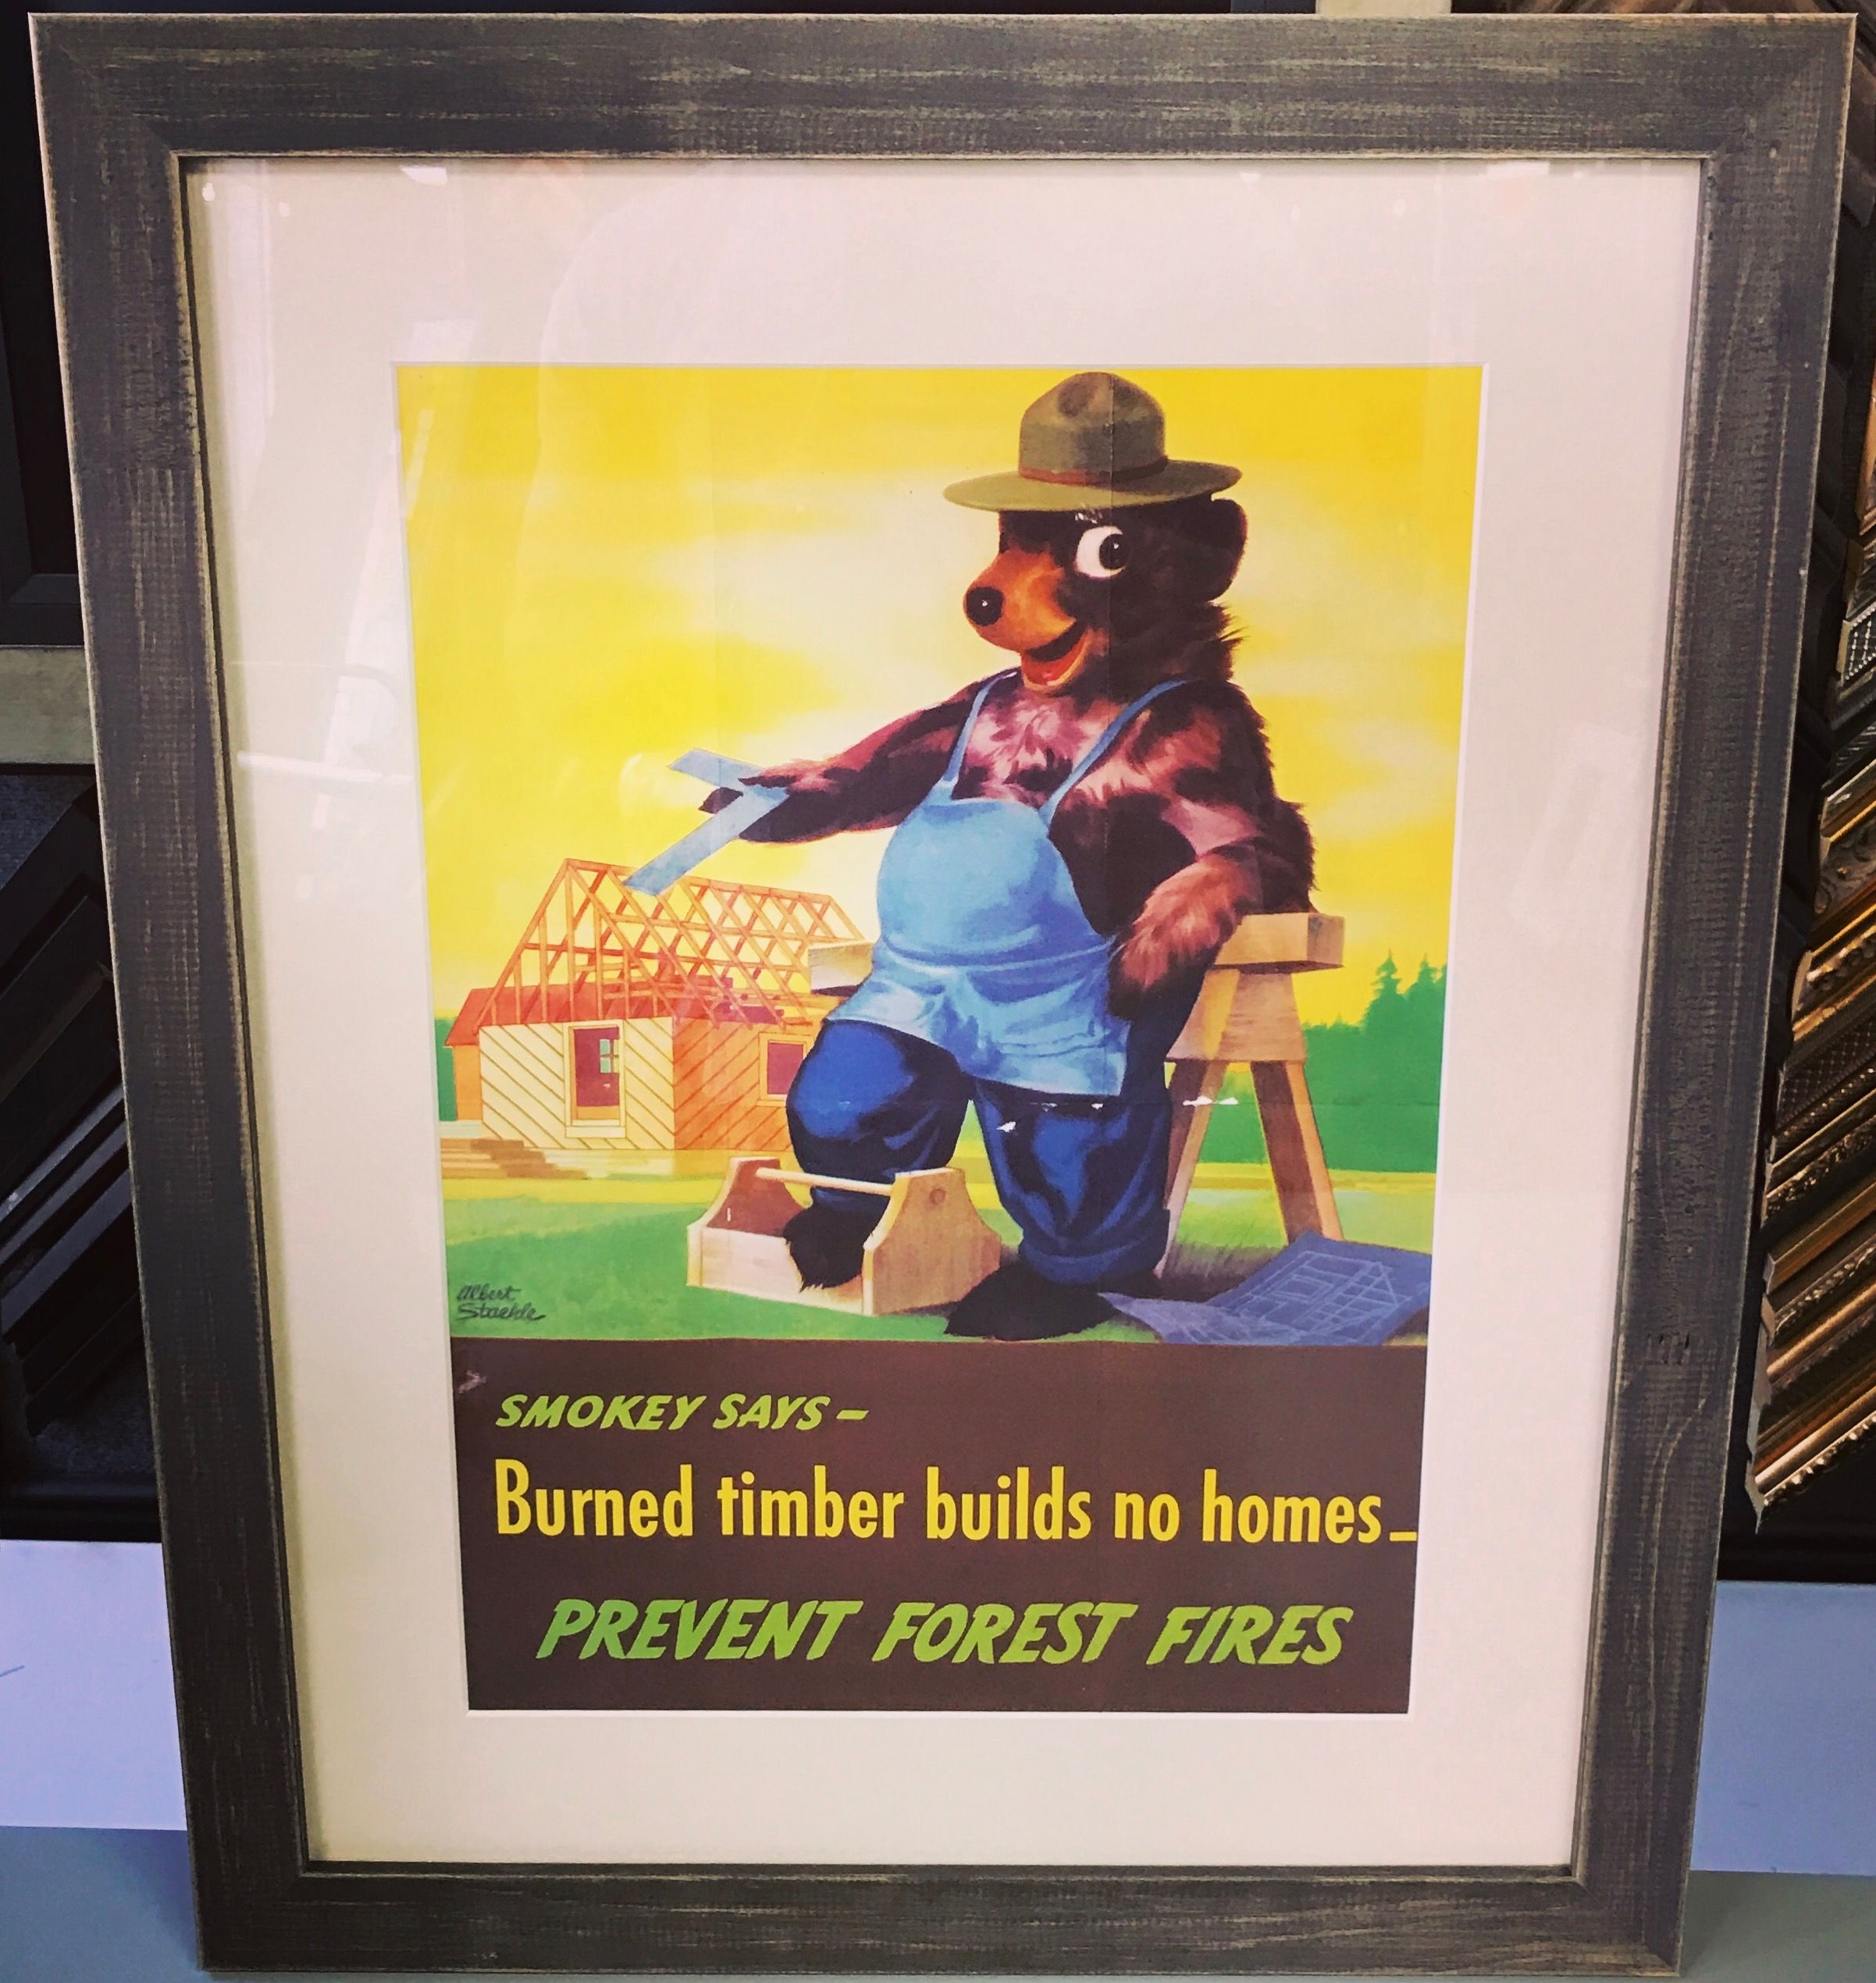 Vintage Smokey The Bear Ad Custom Framed With Universal Arquati S Country Colors Art Pictureframing Cus Framing Photography Smokey The Bears Custom Framing